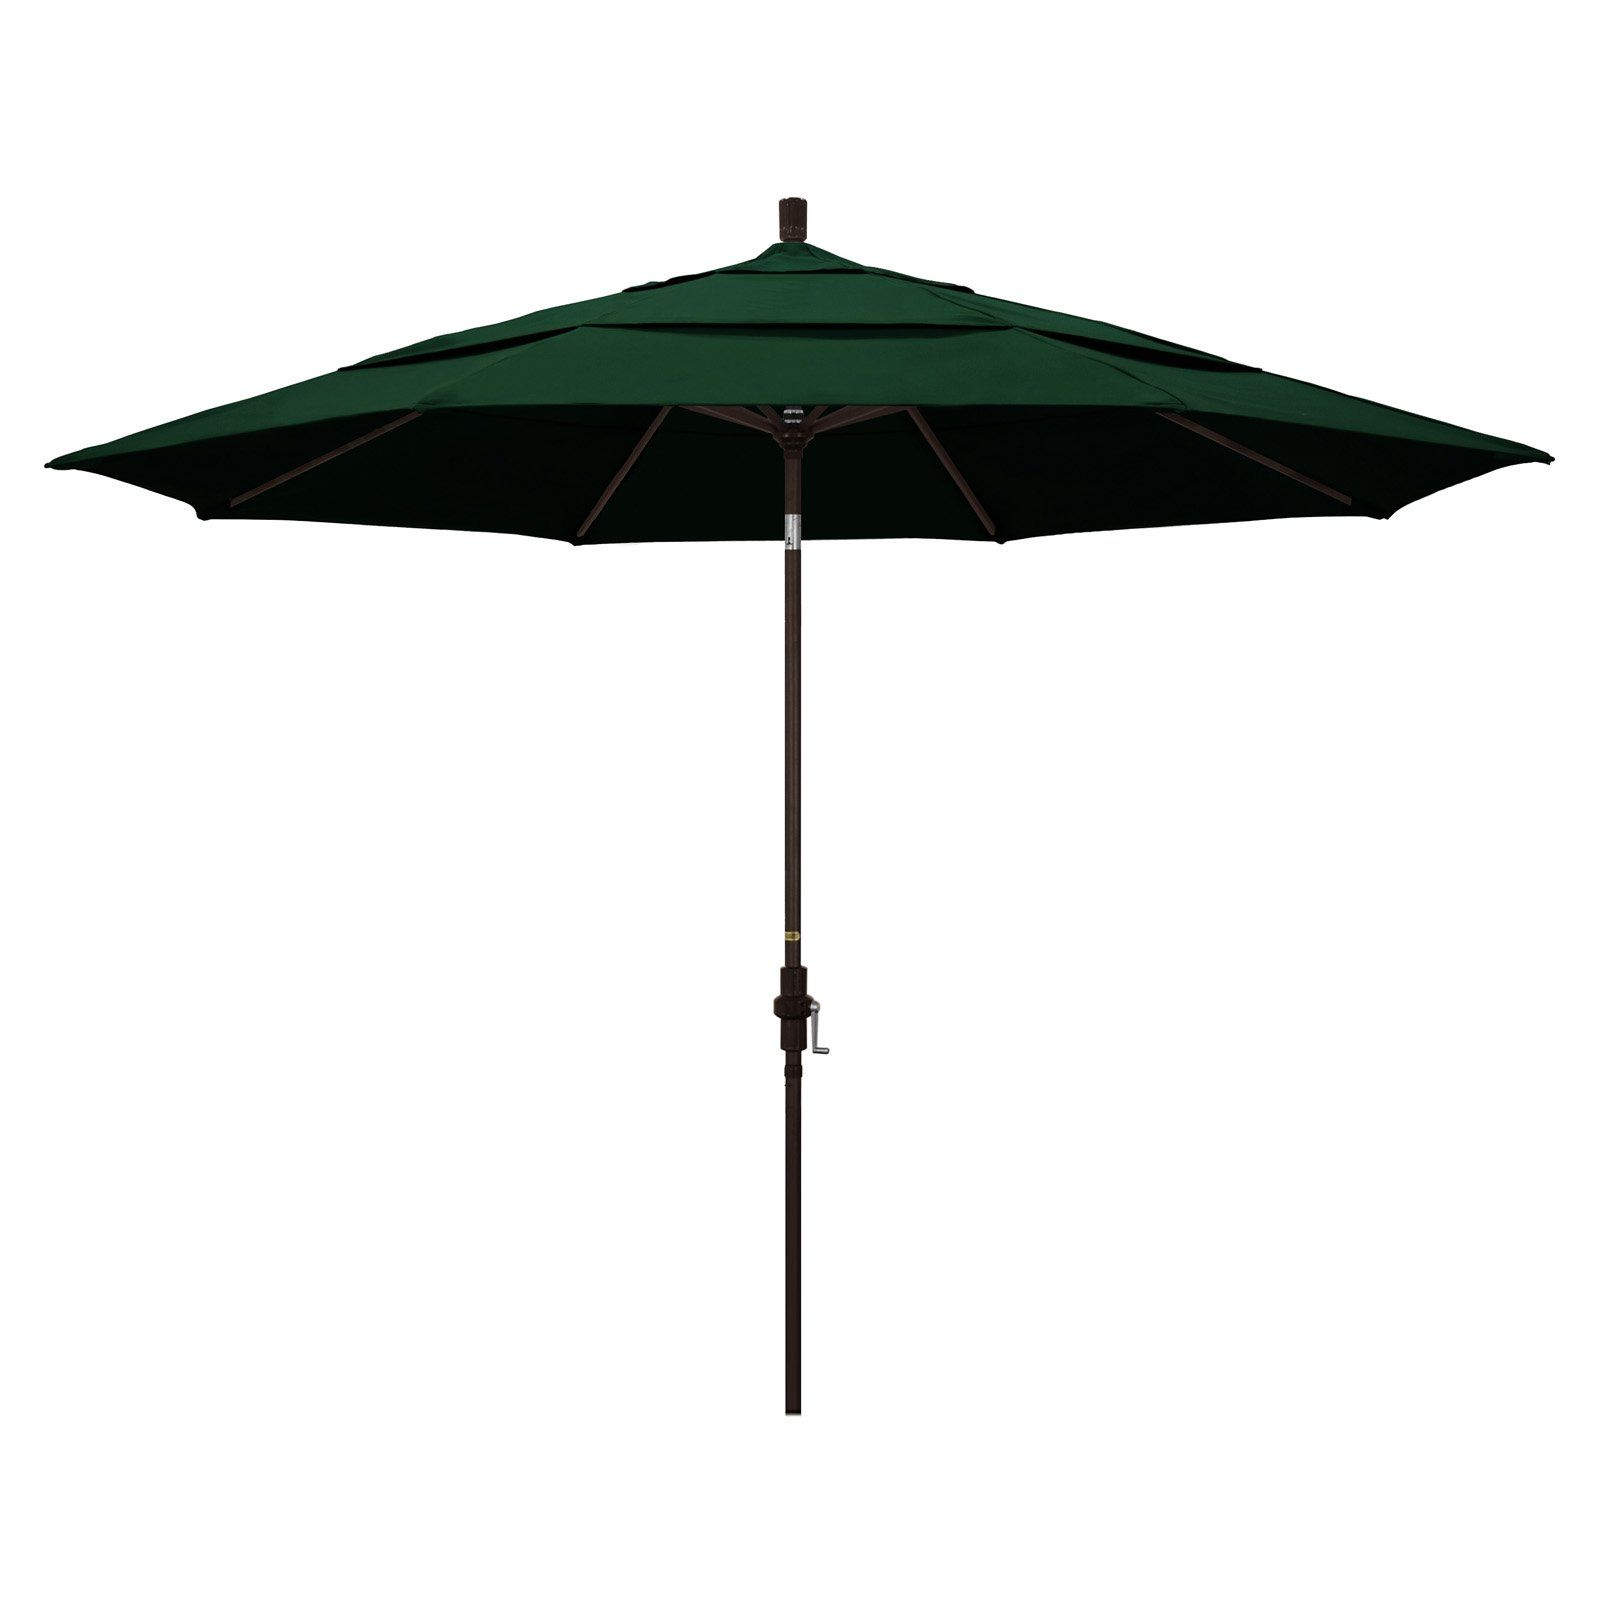 California Umbrella 11 Ft Aluminum Sunbrella Market Umbrella Forest Green California Umbrella Patio Umbrella Market Umbrella